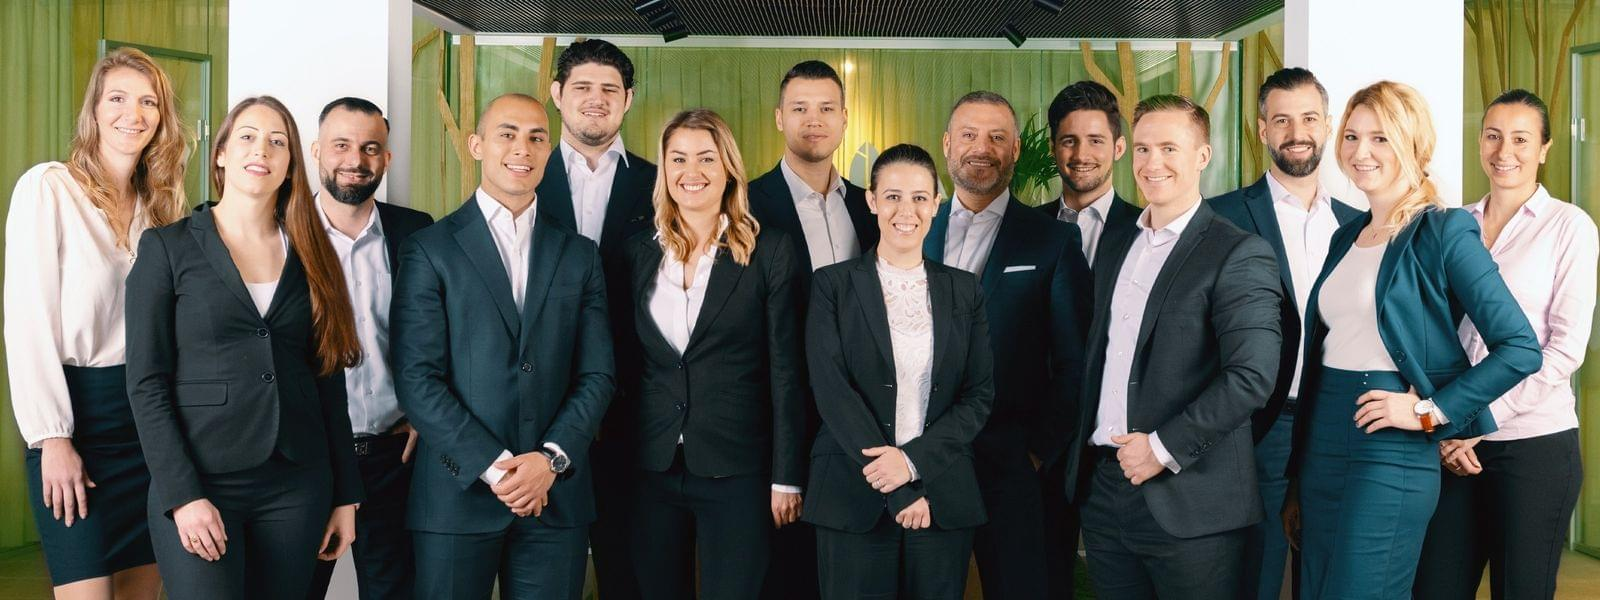 Das MoneyPark-Team